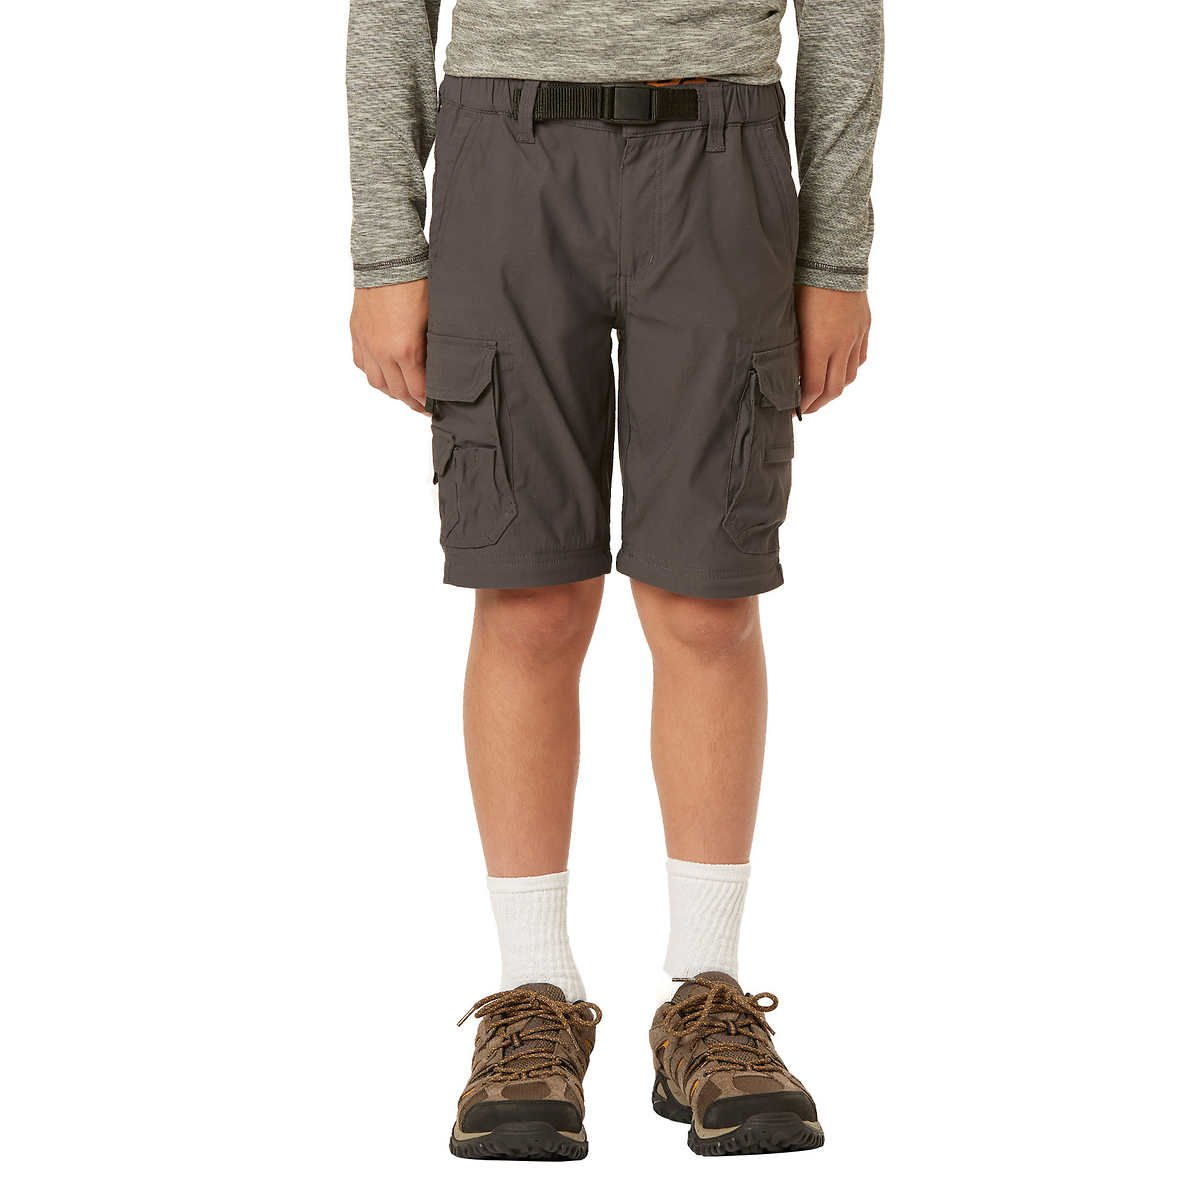 UNIONBAY Boy's Youth Convertible Lightweight Comfort Stretch Cargo Pants/Shorts (X-Small (5/6), Charcoal) by UNIONBAY (Image #5)